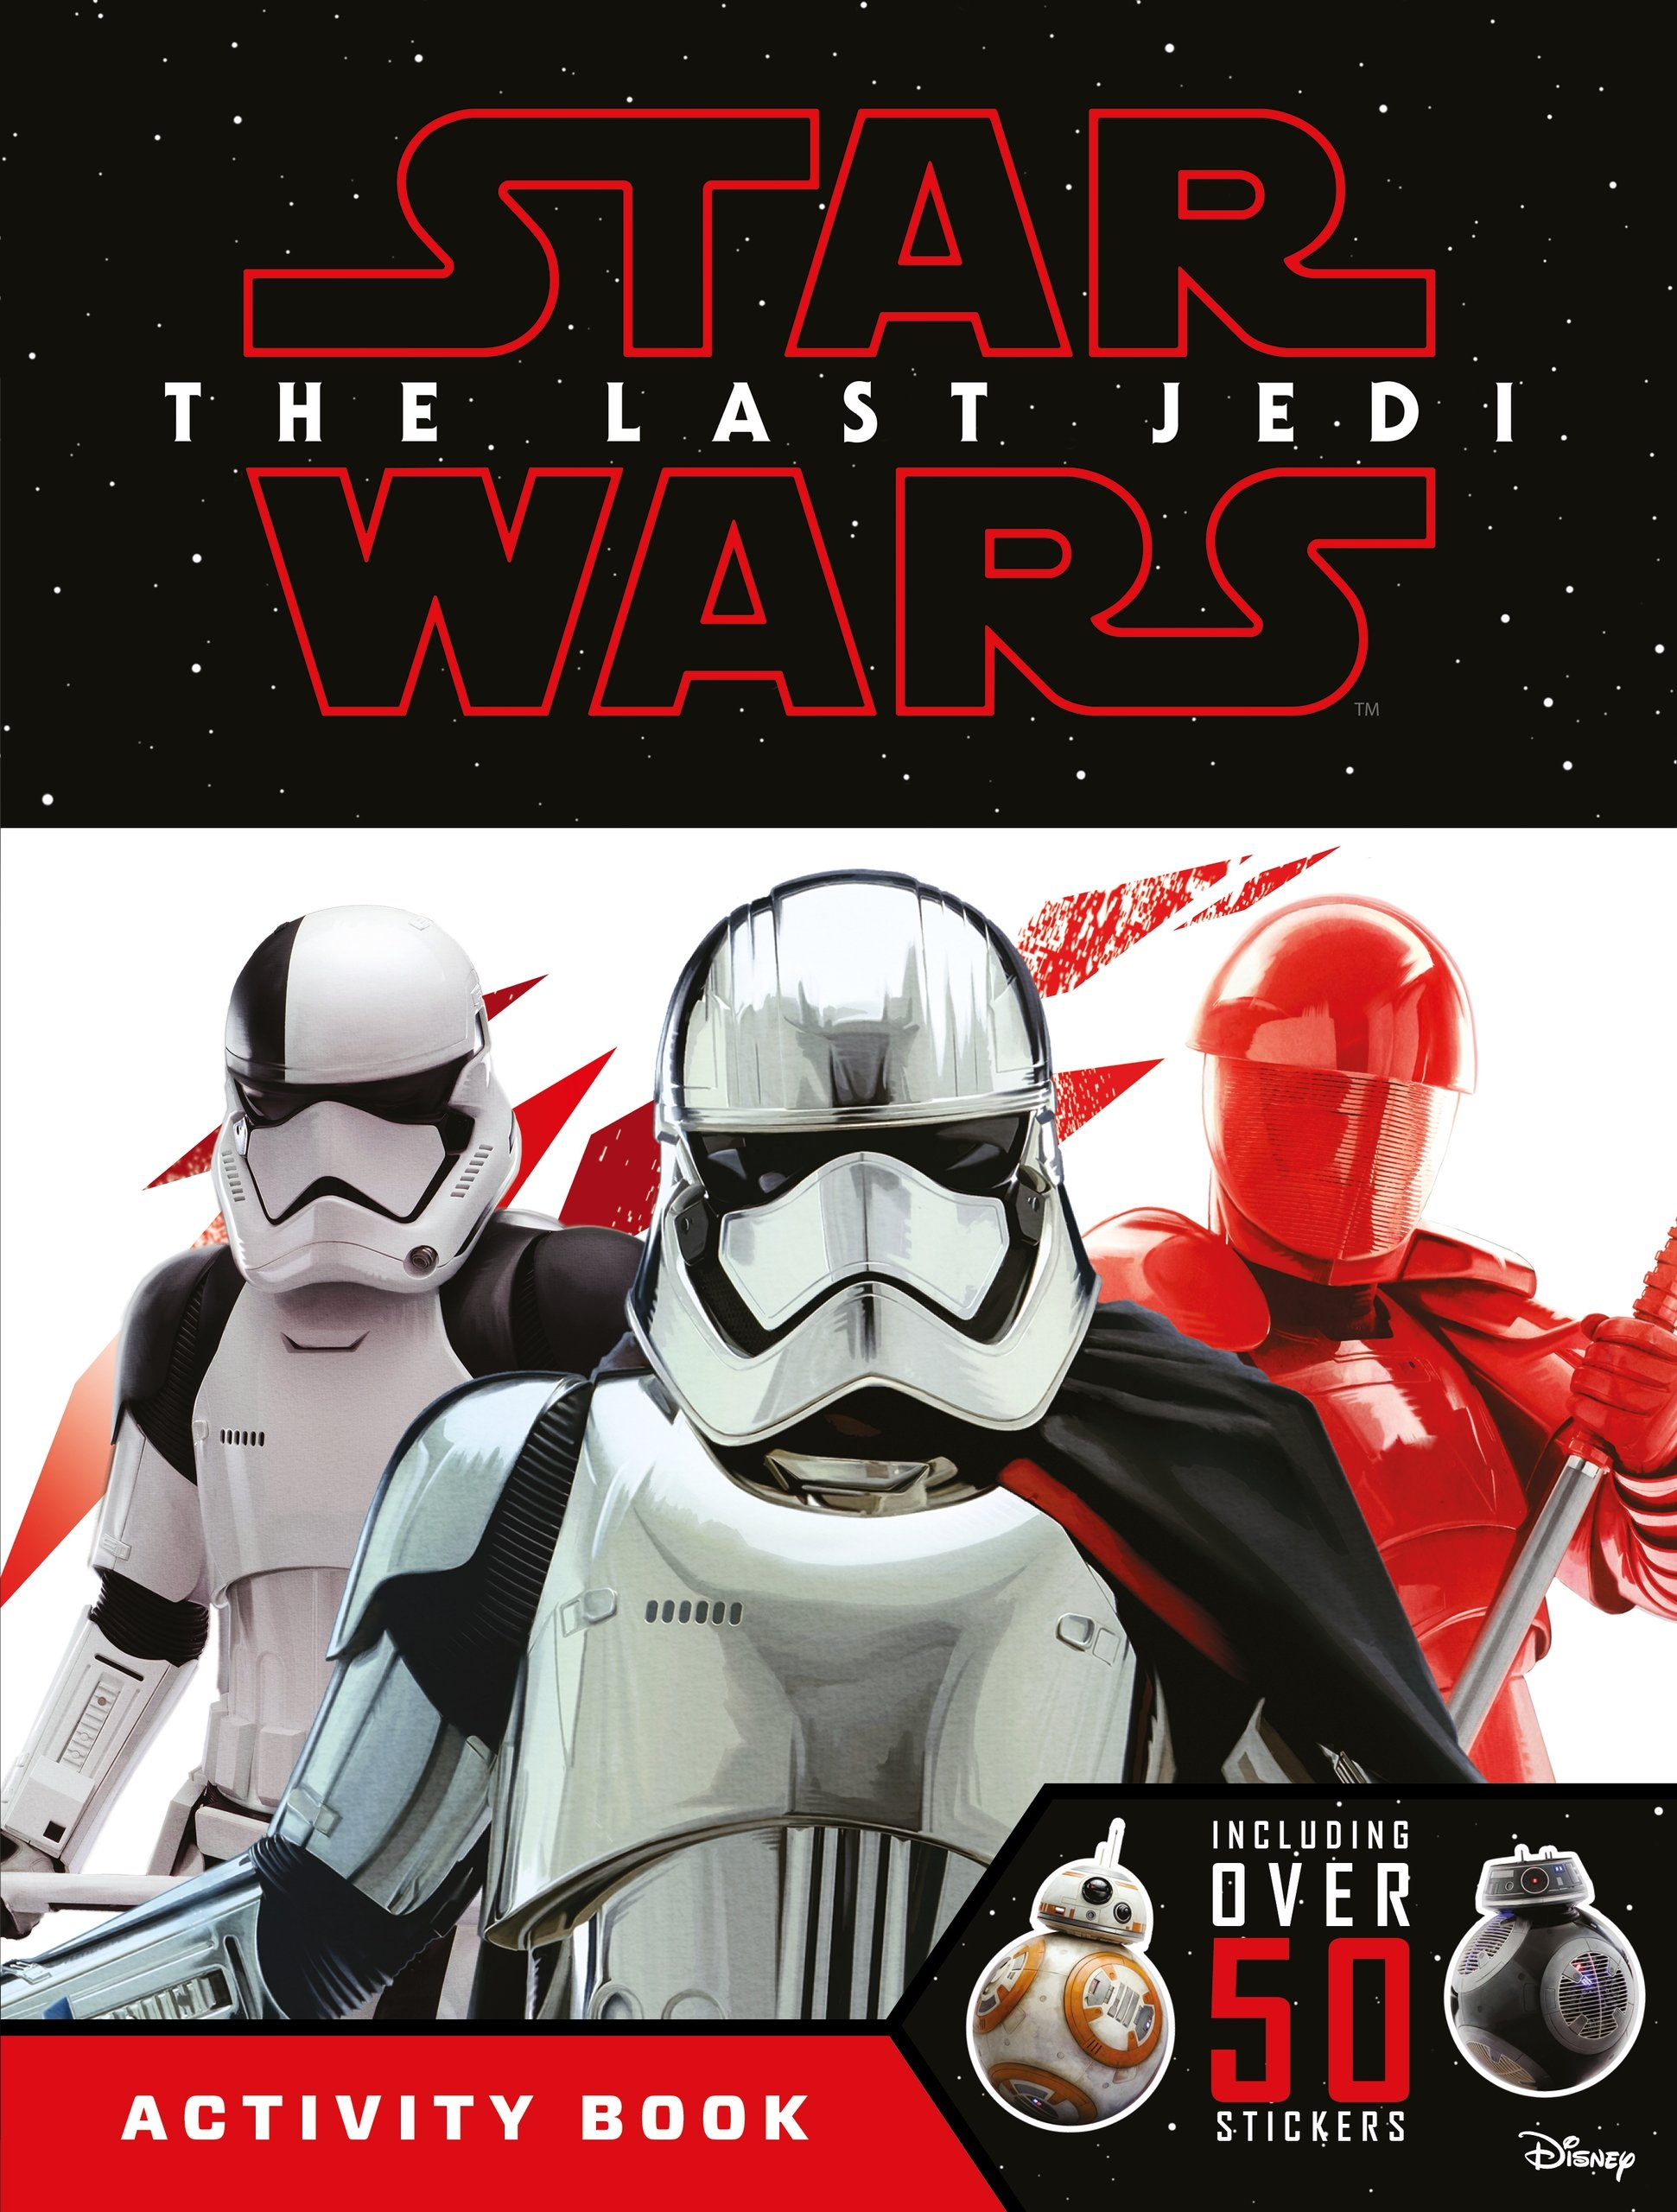 Star Wars: The Last Jedi Activity Book